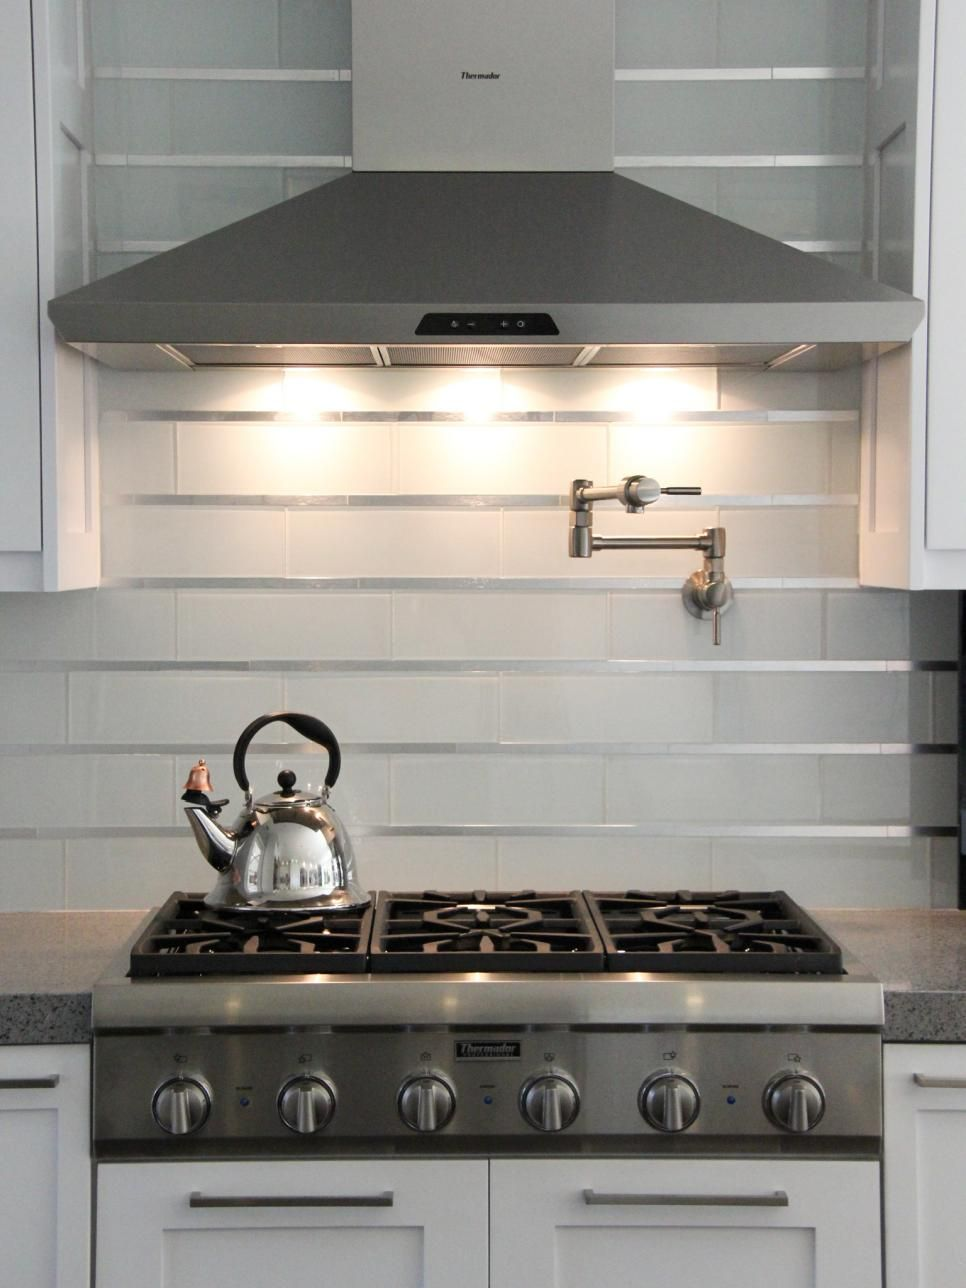 20 stainless steel kitchen backsplashes subway tiles for Kitchen backsplash ideas will enhance visual kitchen